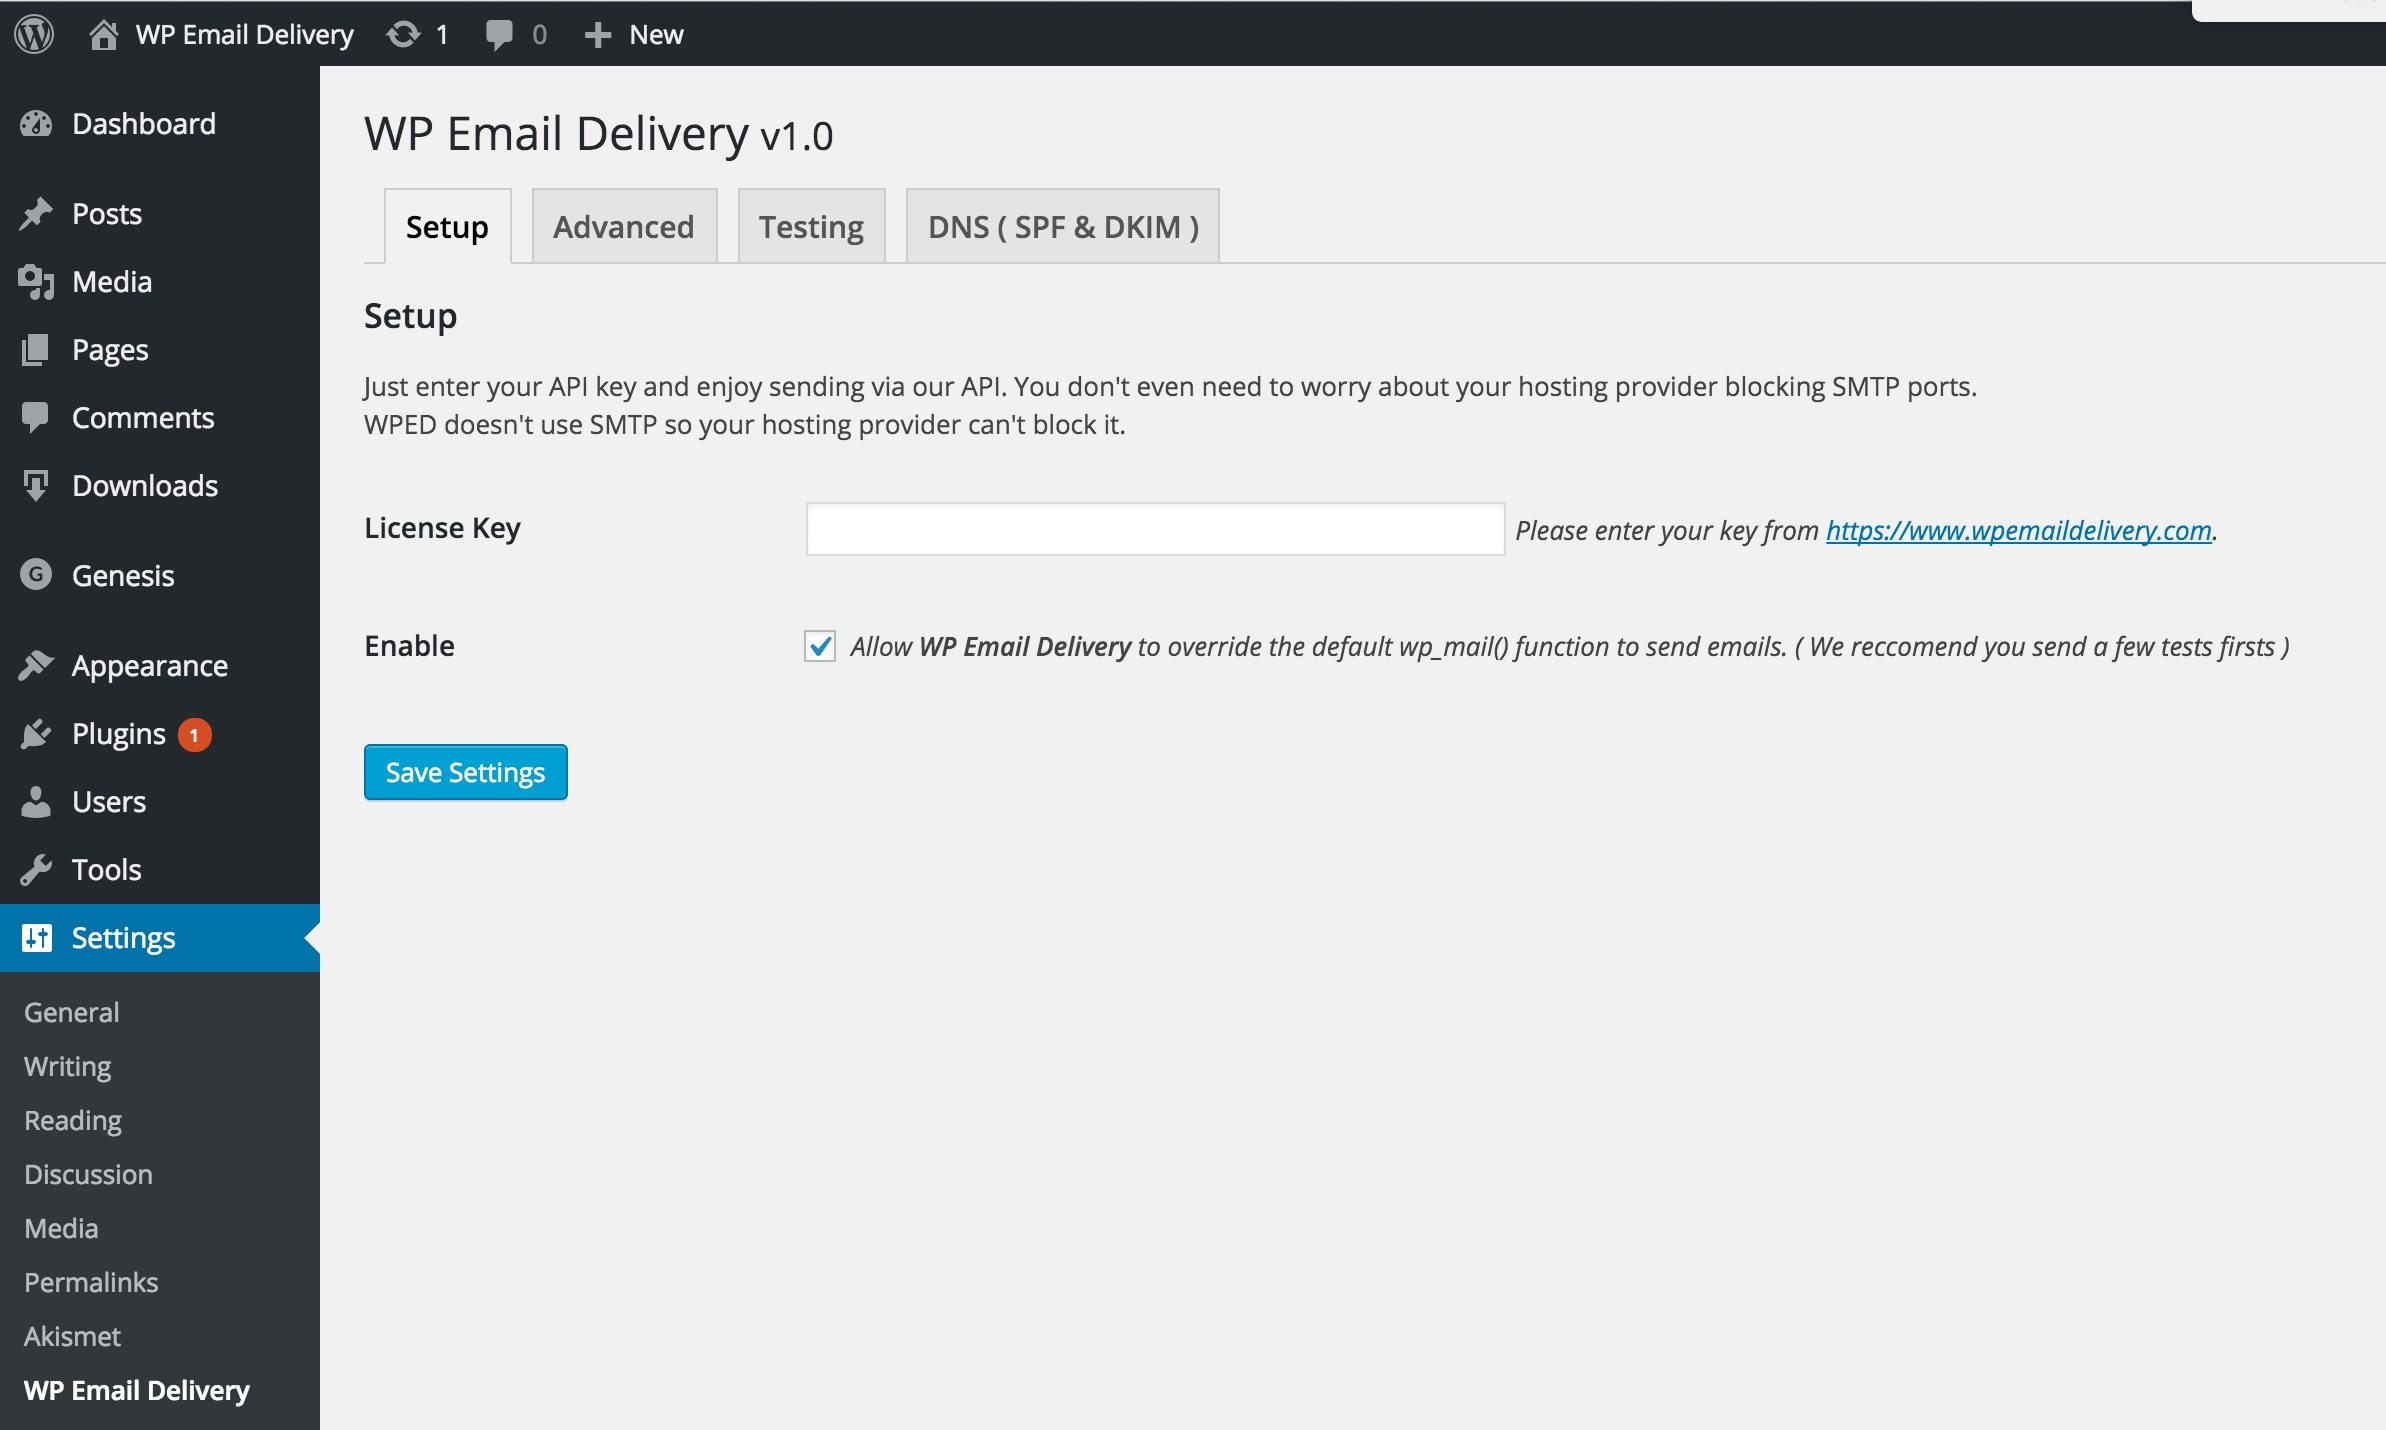 wp-email-delivery screenshot 1